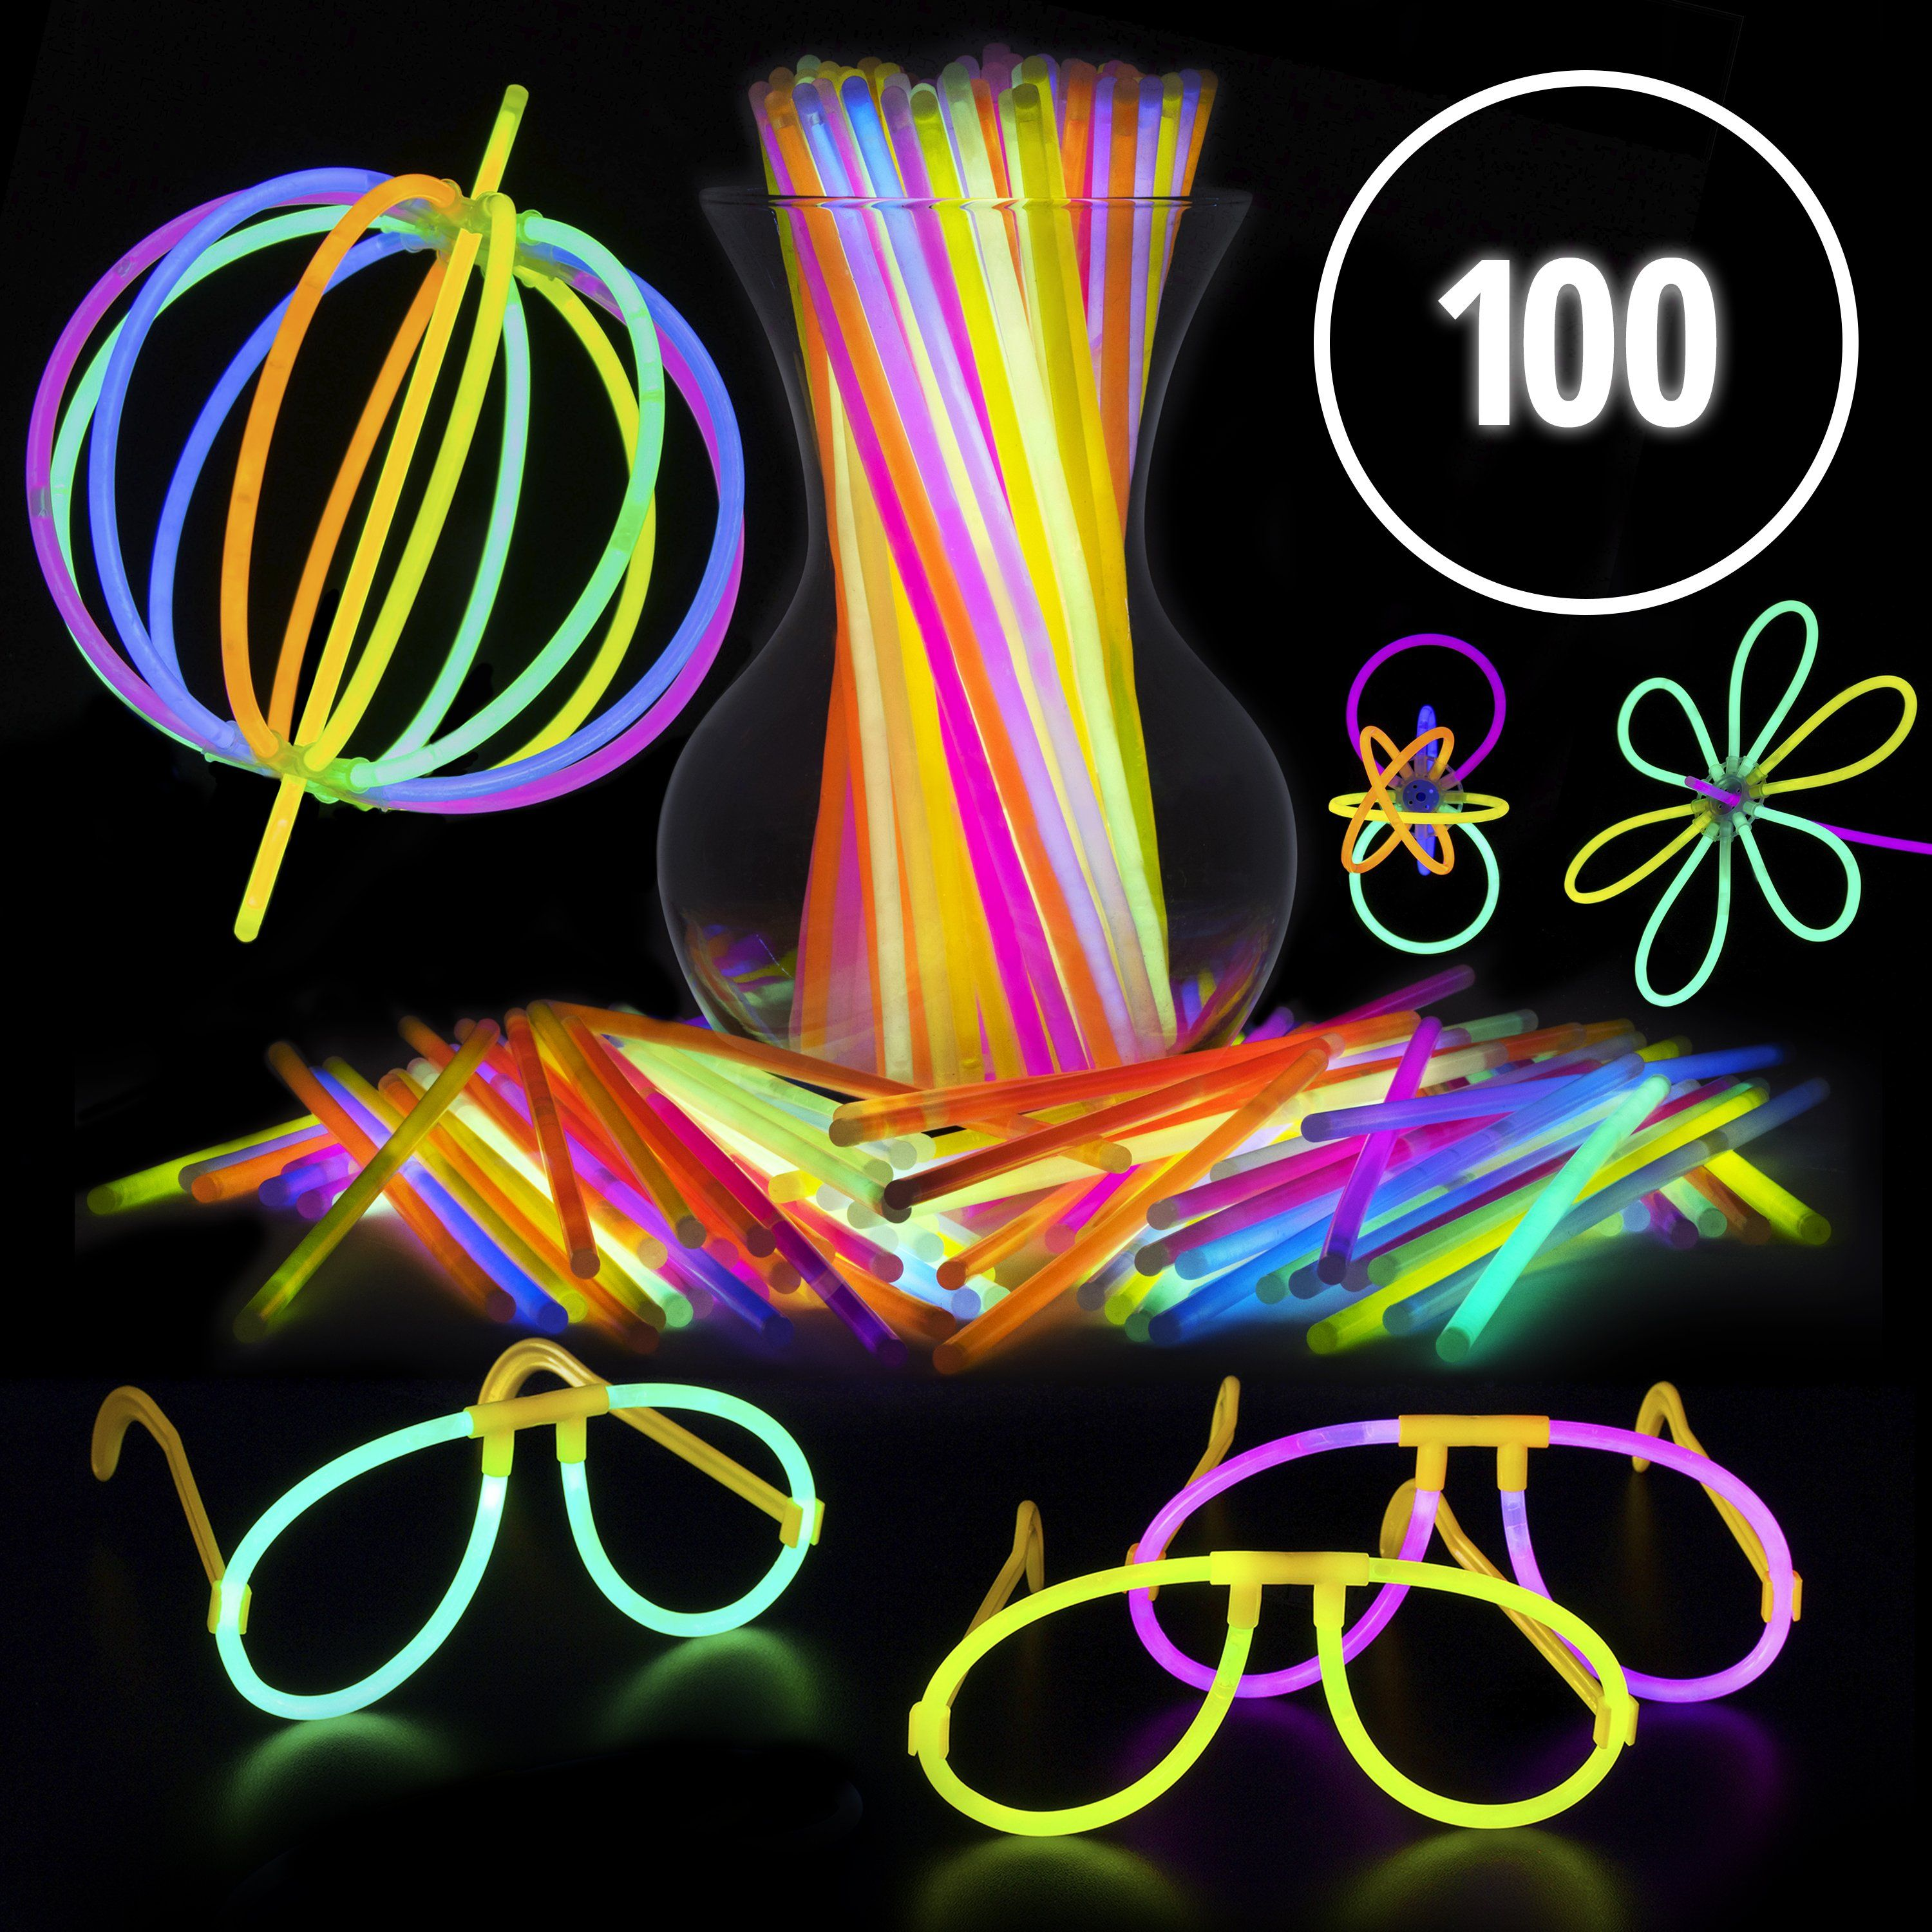 Pink Glow Stick Eyeglasses with Connectors Glow in The Dark Party Favors Neon Glow Party Eyewear